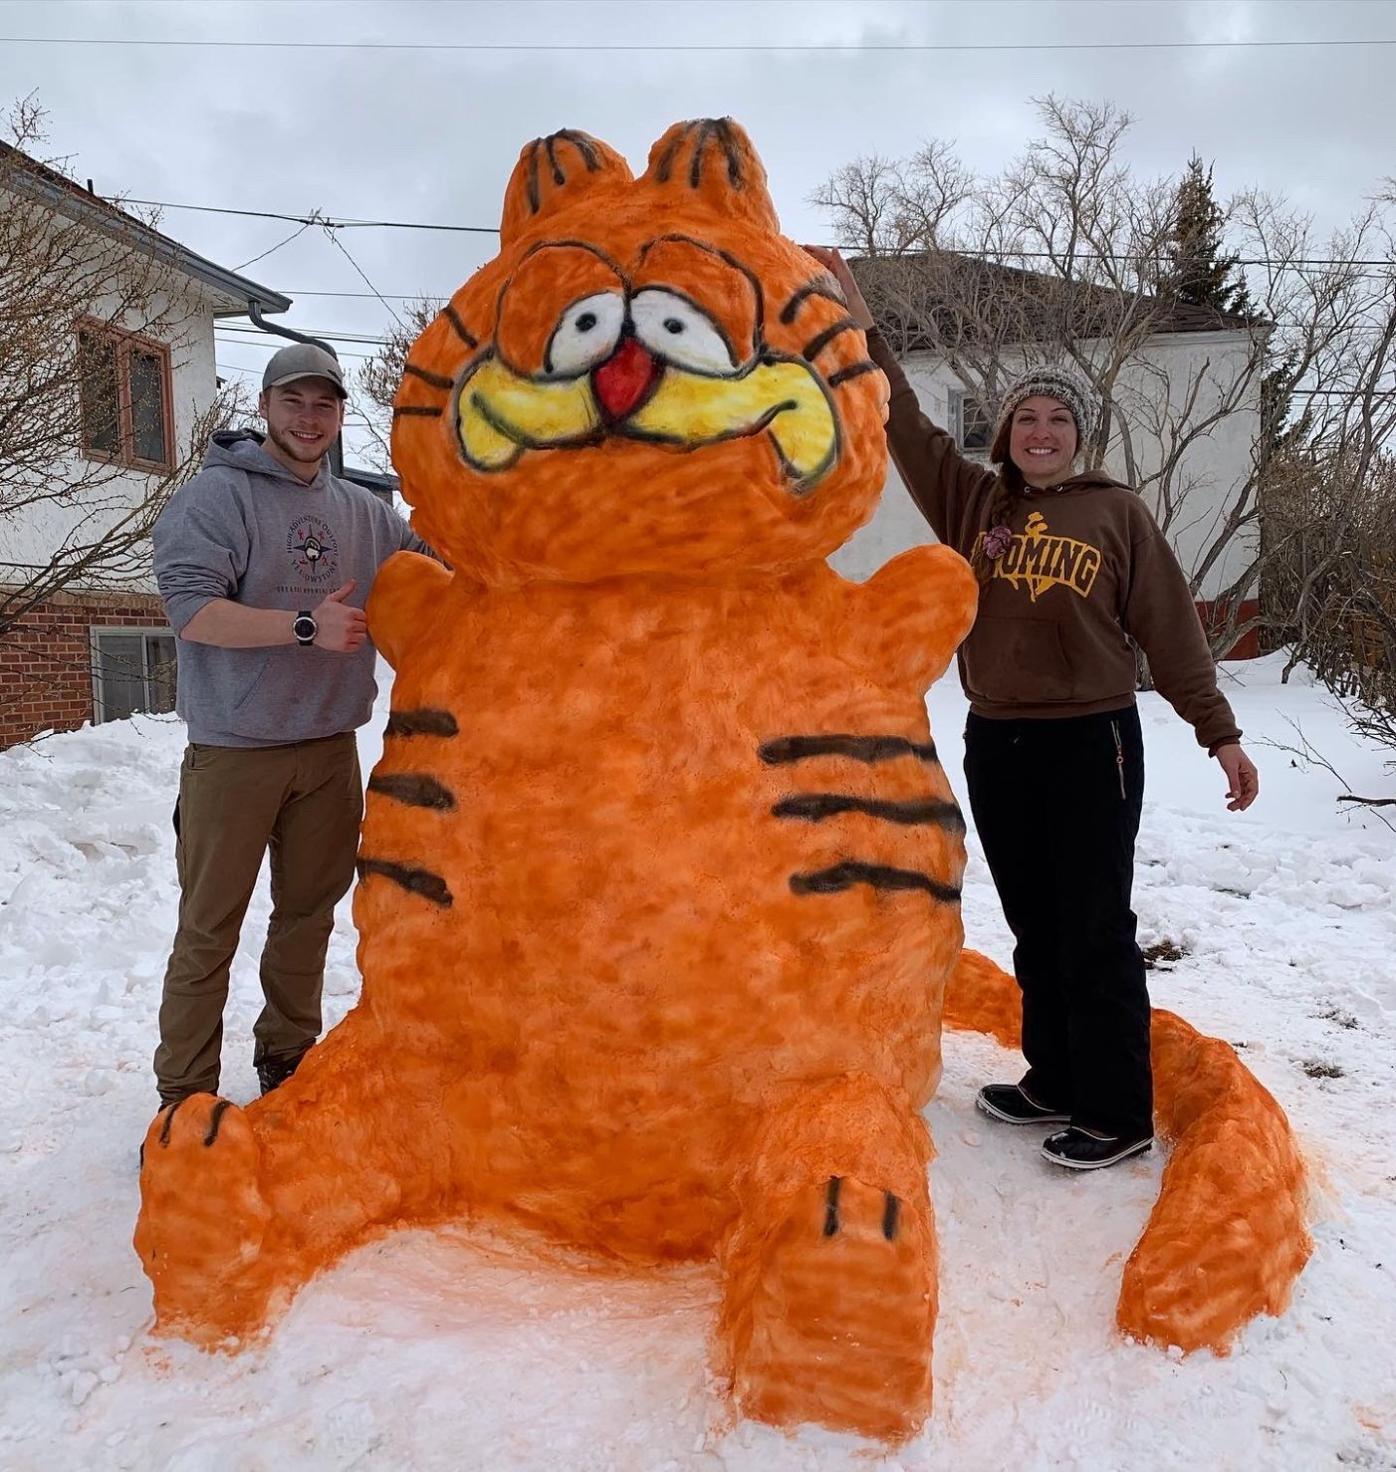 Garfield snowman No. 1